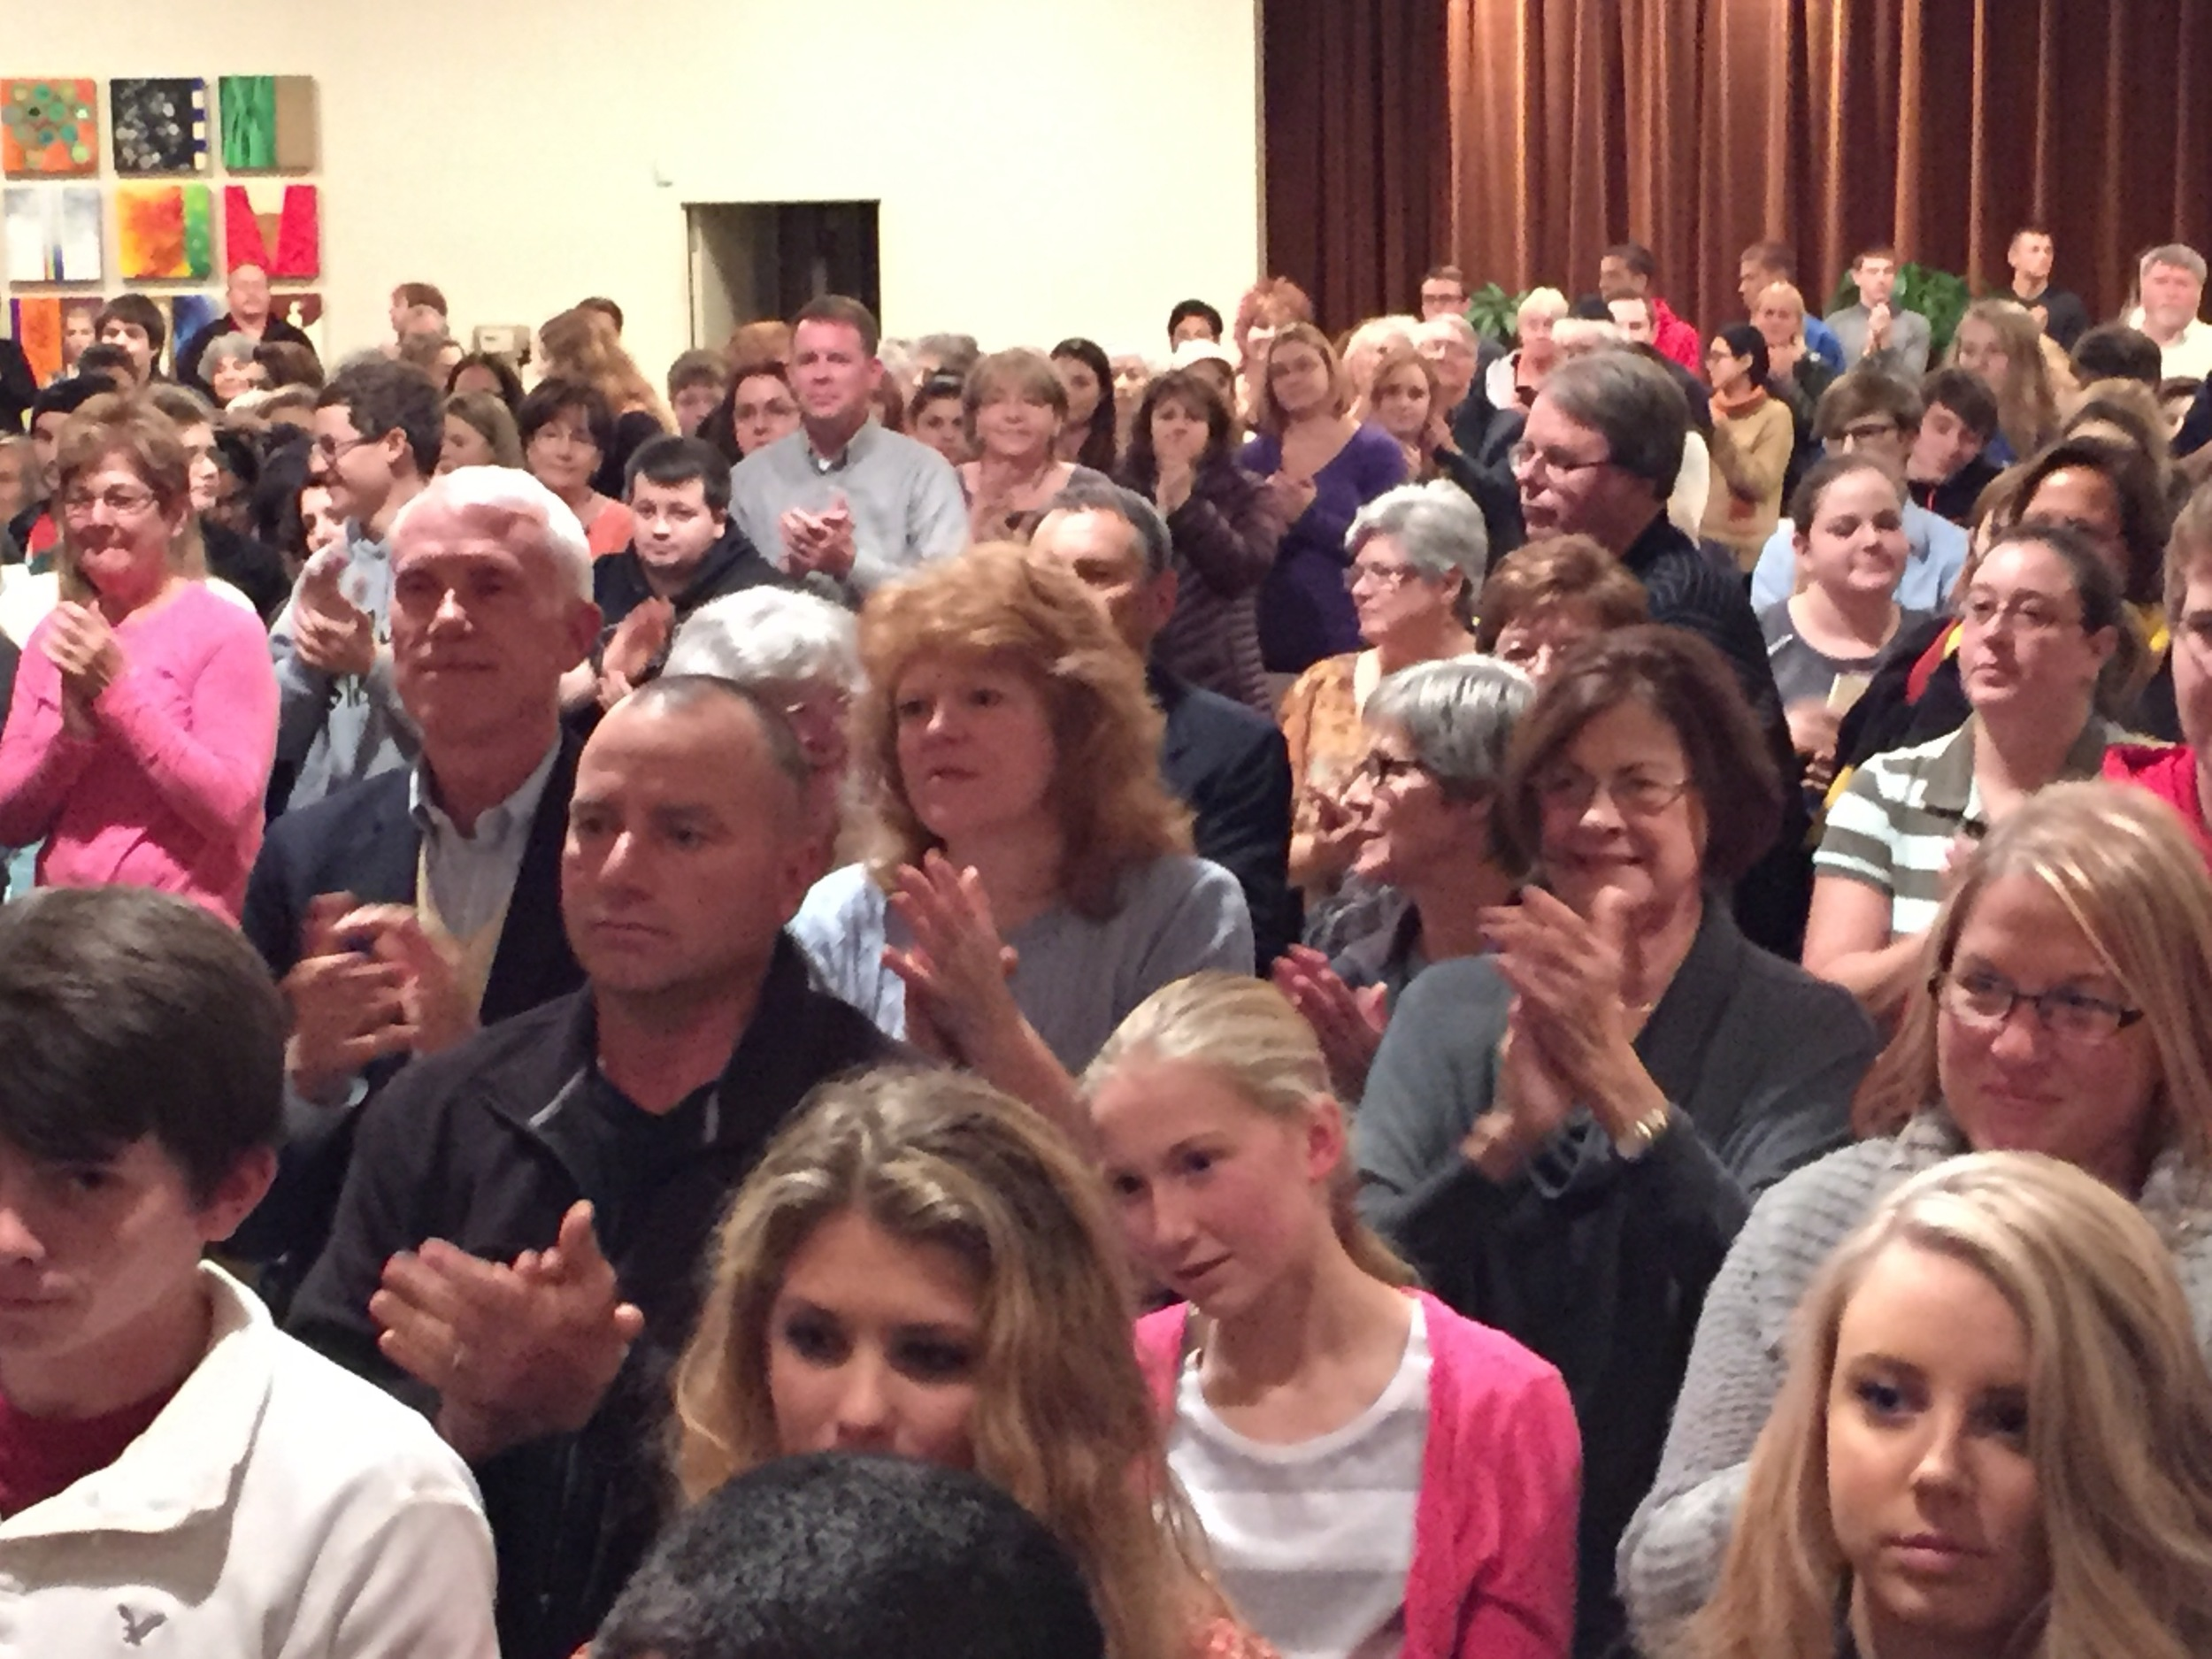 The capacity crowd at Temple Shalom gave Lazan a standing ovation following her lecture.